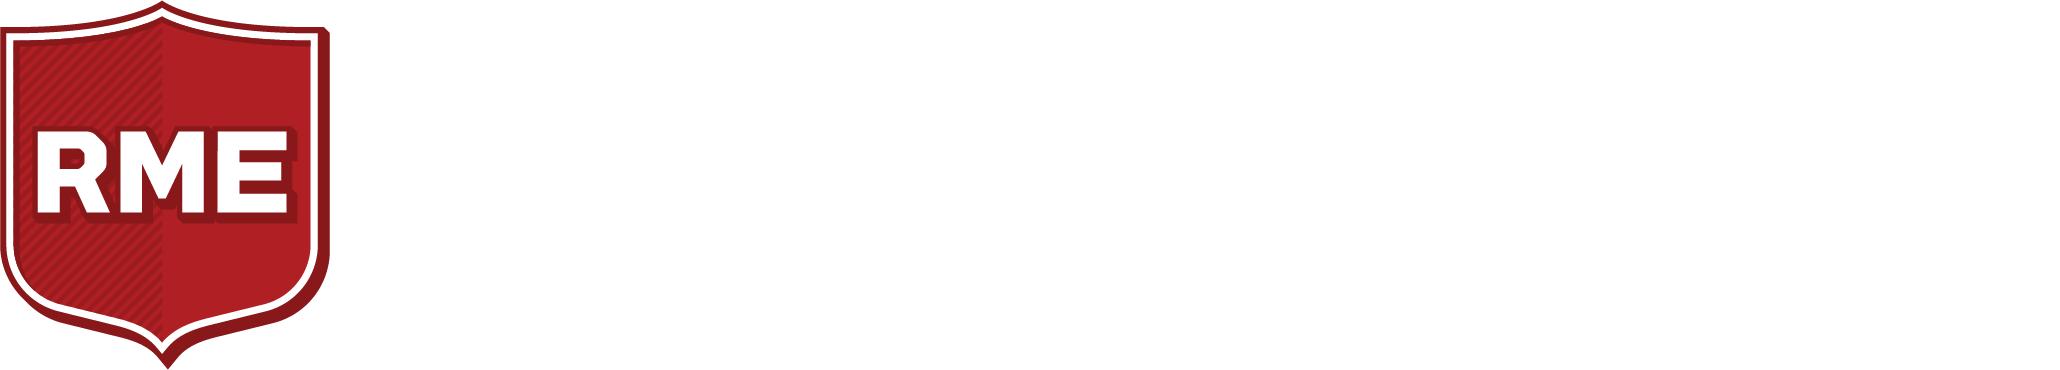 RME Deal Zone